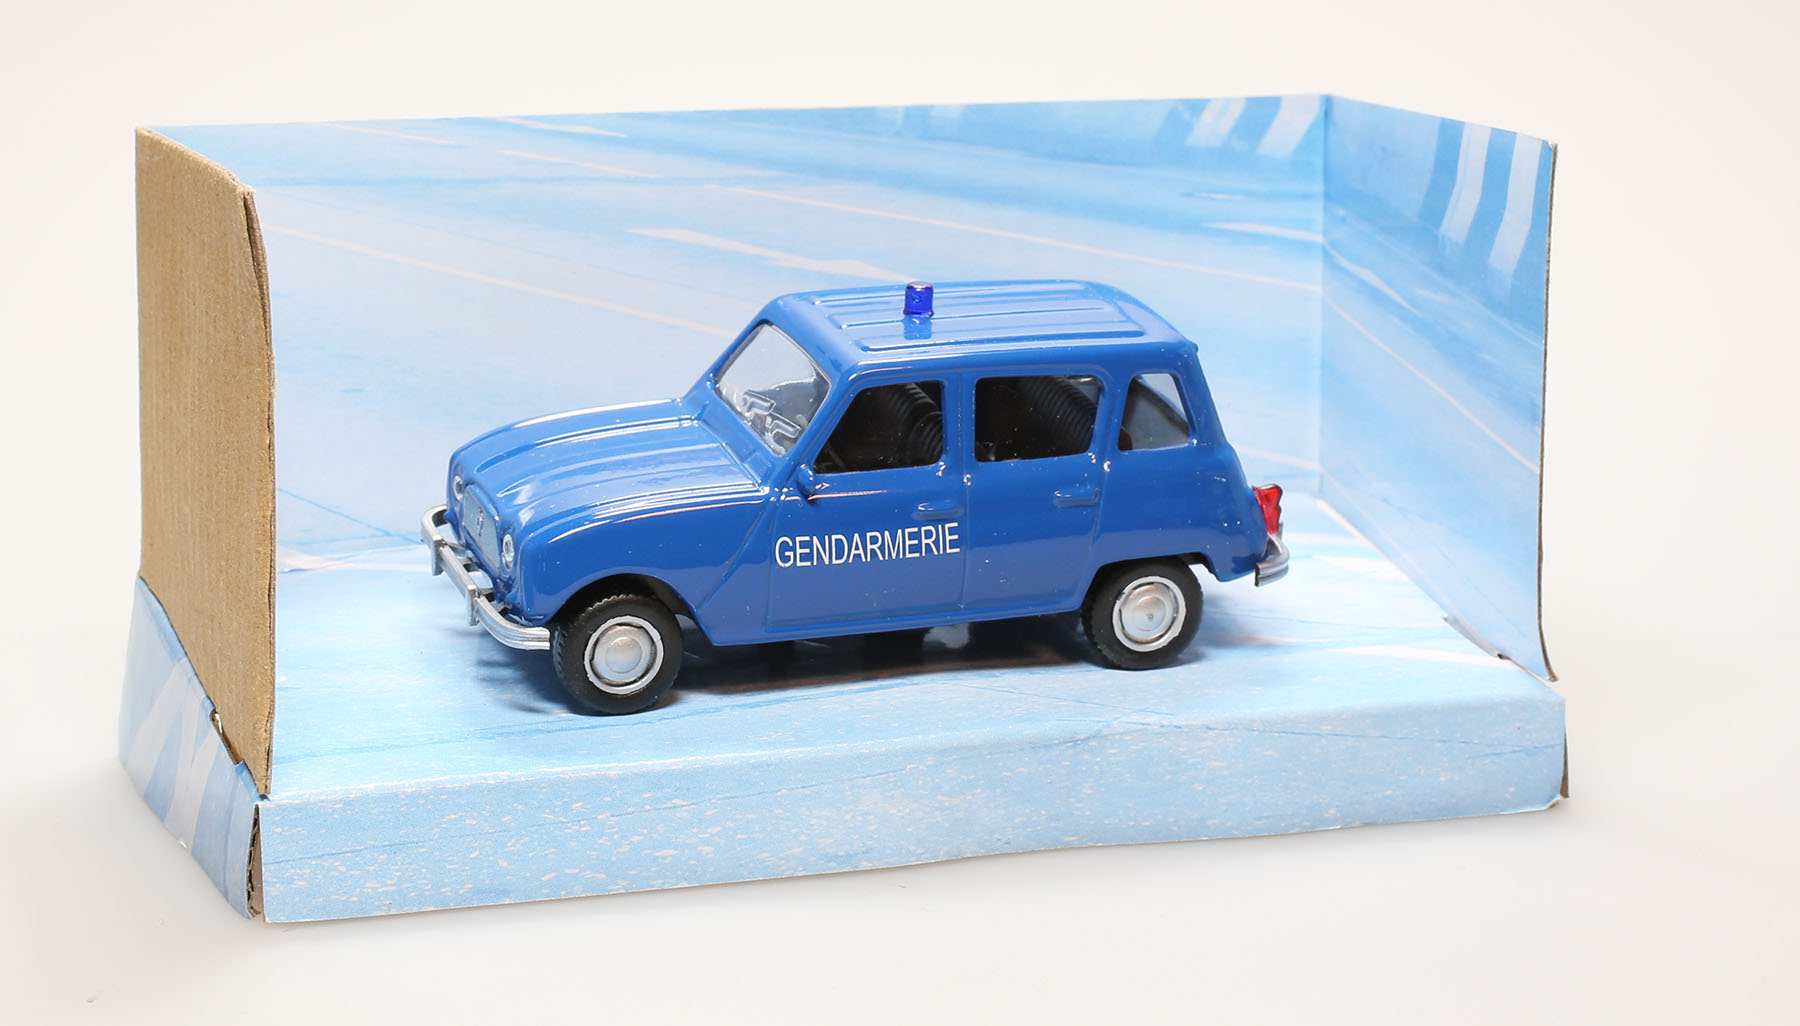 voiture de police miniature renault 4l gendarmerie 1 43 ebay. Black Bedroom Furniture Sets. Home Design Ideas